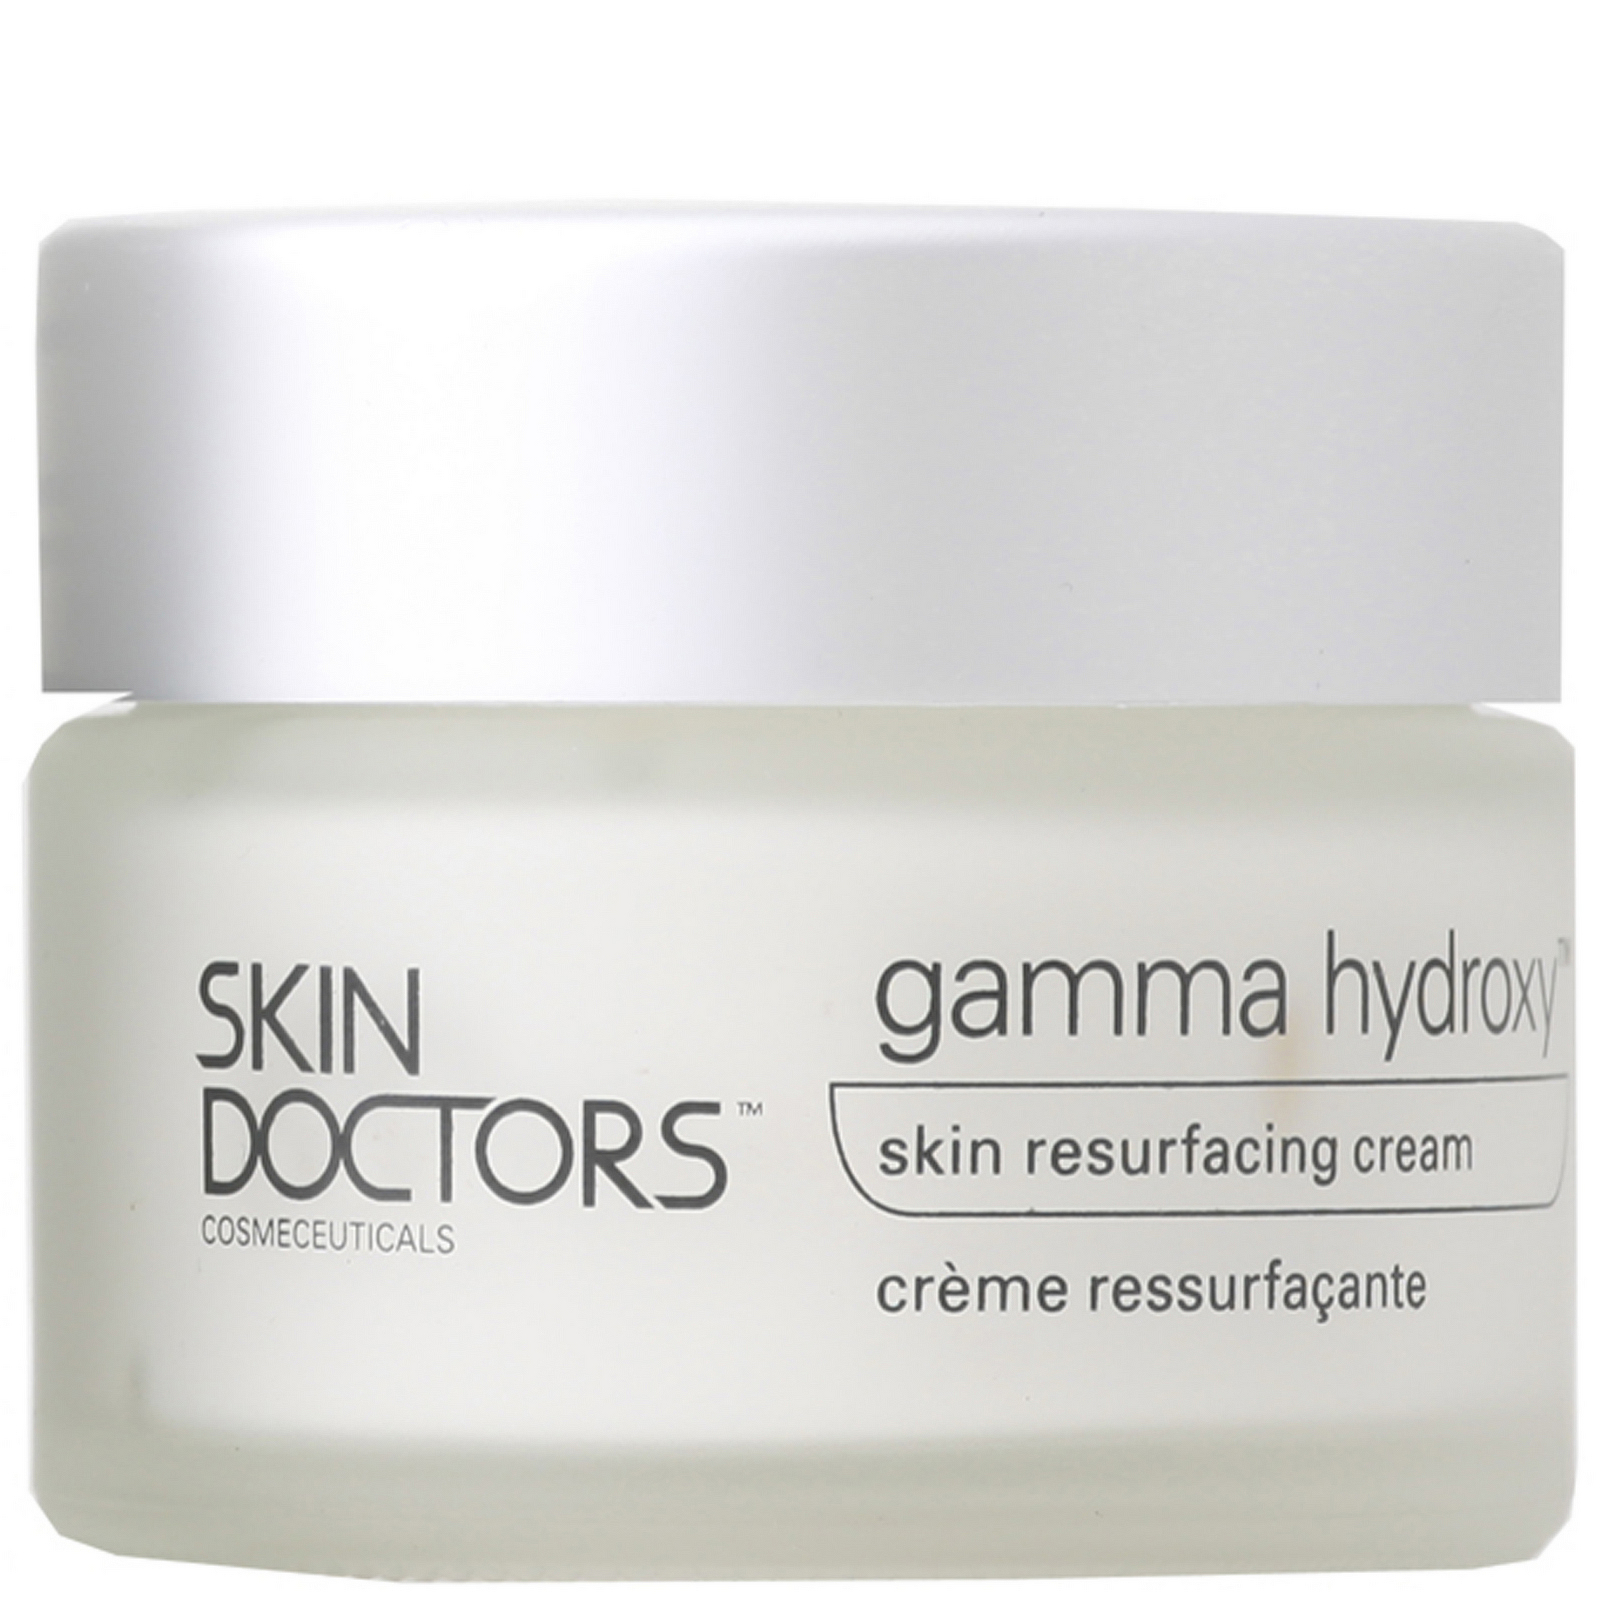 Skin Doctors Face Gamma Hydroxy Skin Resurfacing Cream 50ml